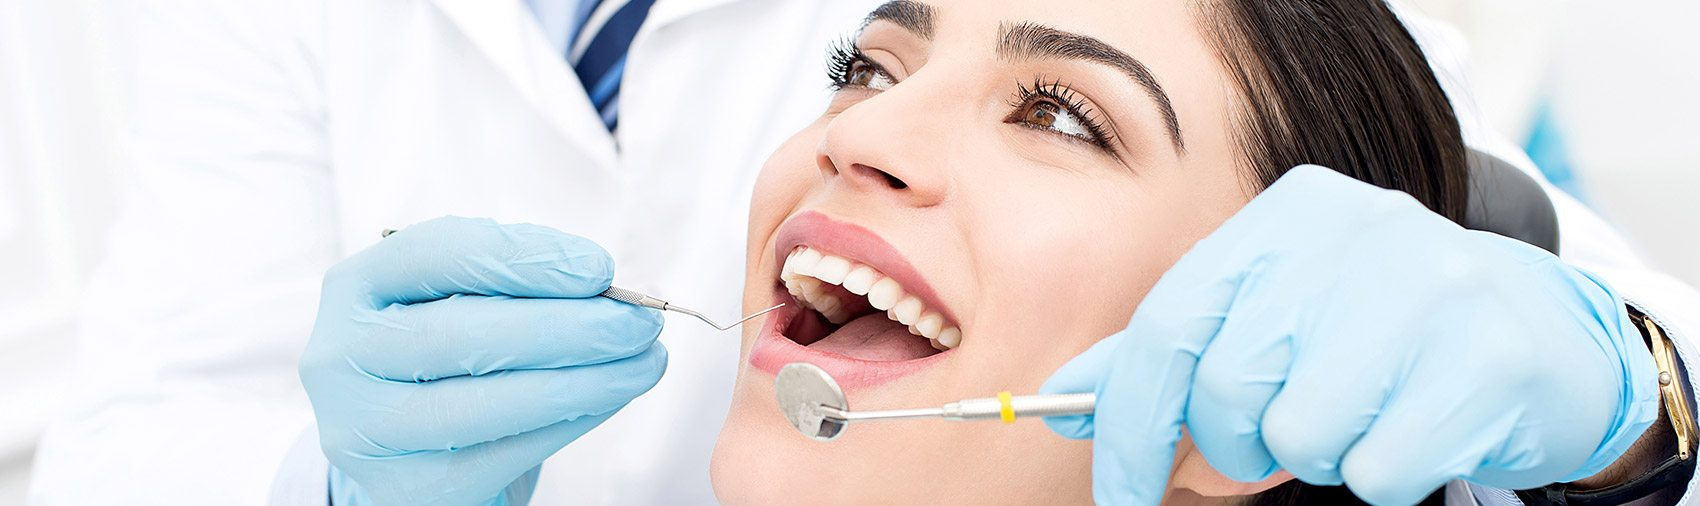 Dental Exams and Teeth Cleanings - Meredith Levine, DDS, Inc.